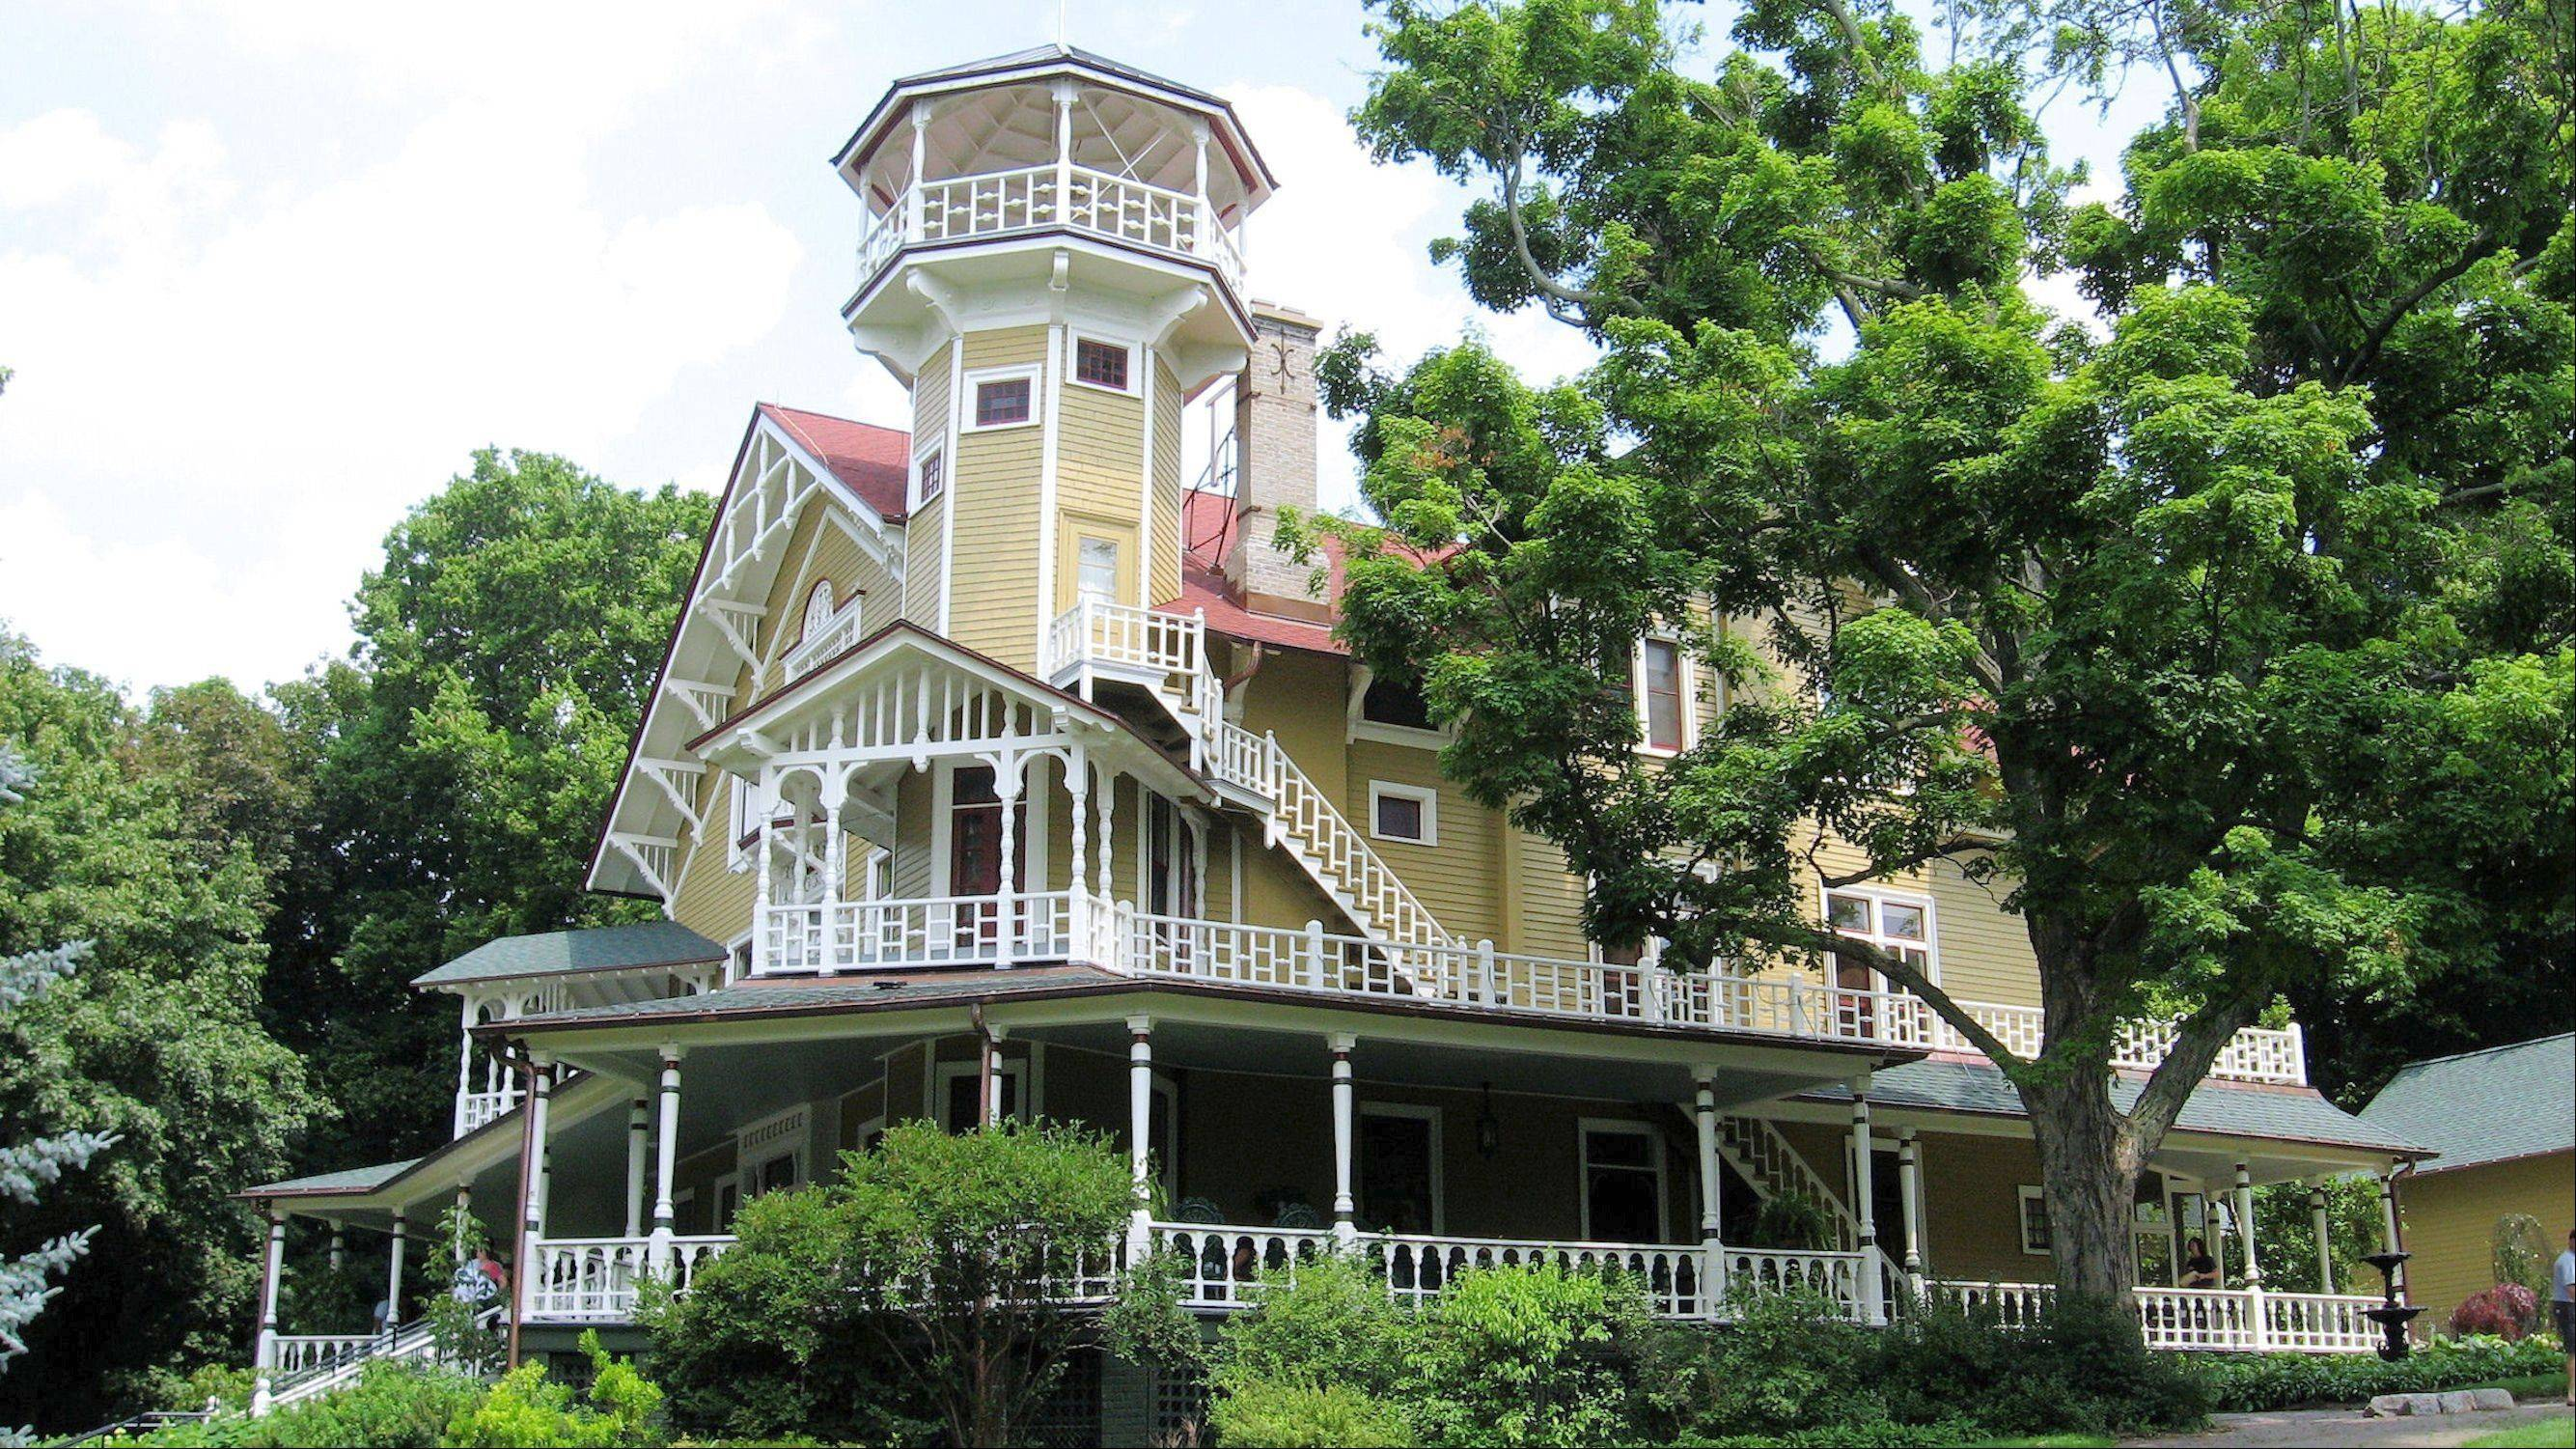 Cruise Lake Geneva to tour the restored gardens and 20-room Black Point Mansion, built in 1888.